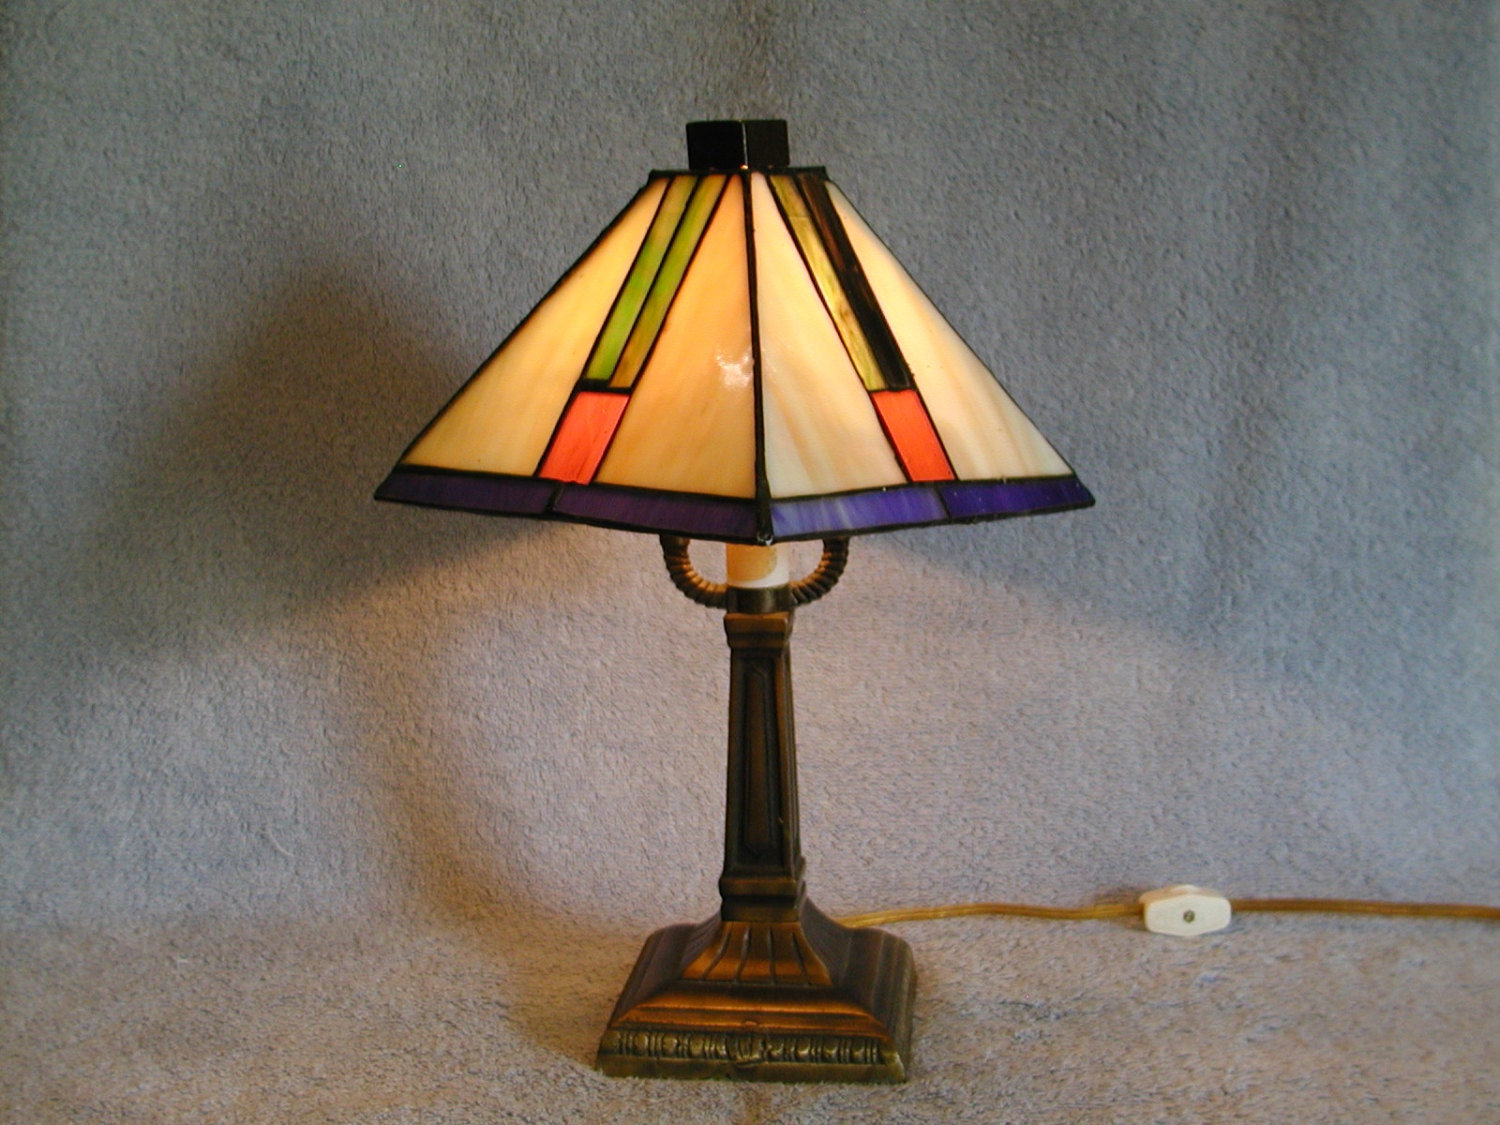 Wright Brothers Stained Glass Lamp : Stained glass lamp frank lloyd wright style